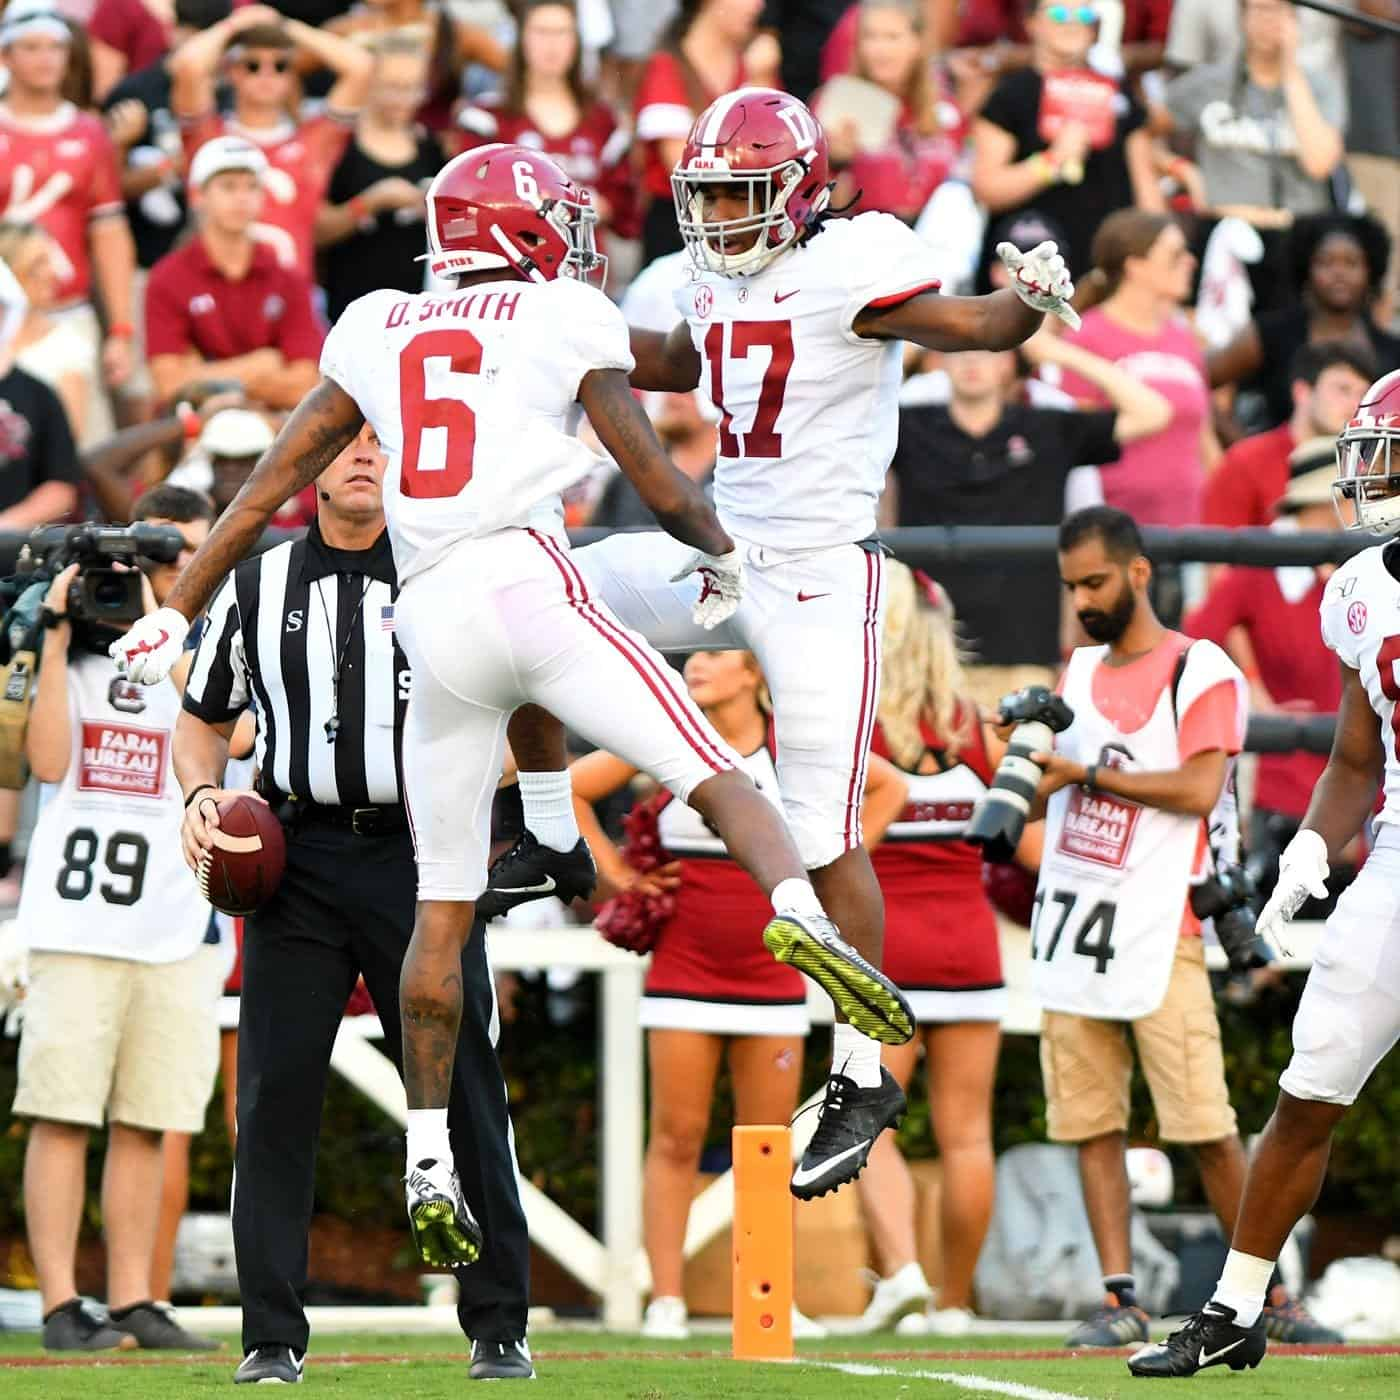 2021 NFL Draft: Smith and Waddle next great Alabama receiver duo